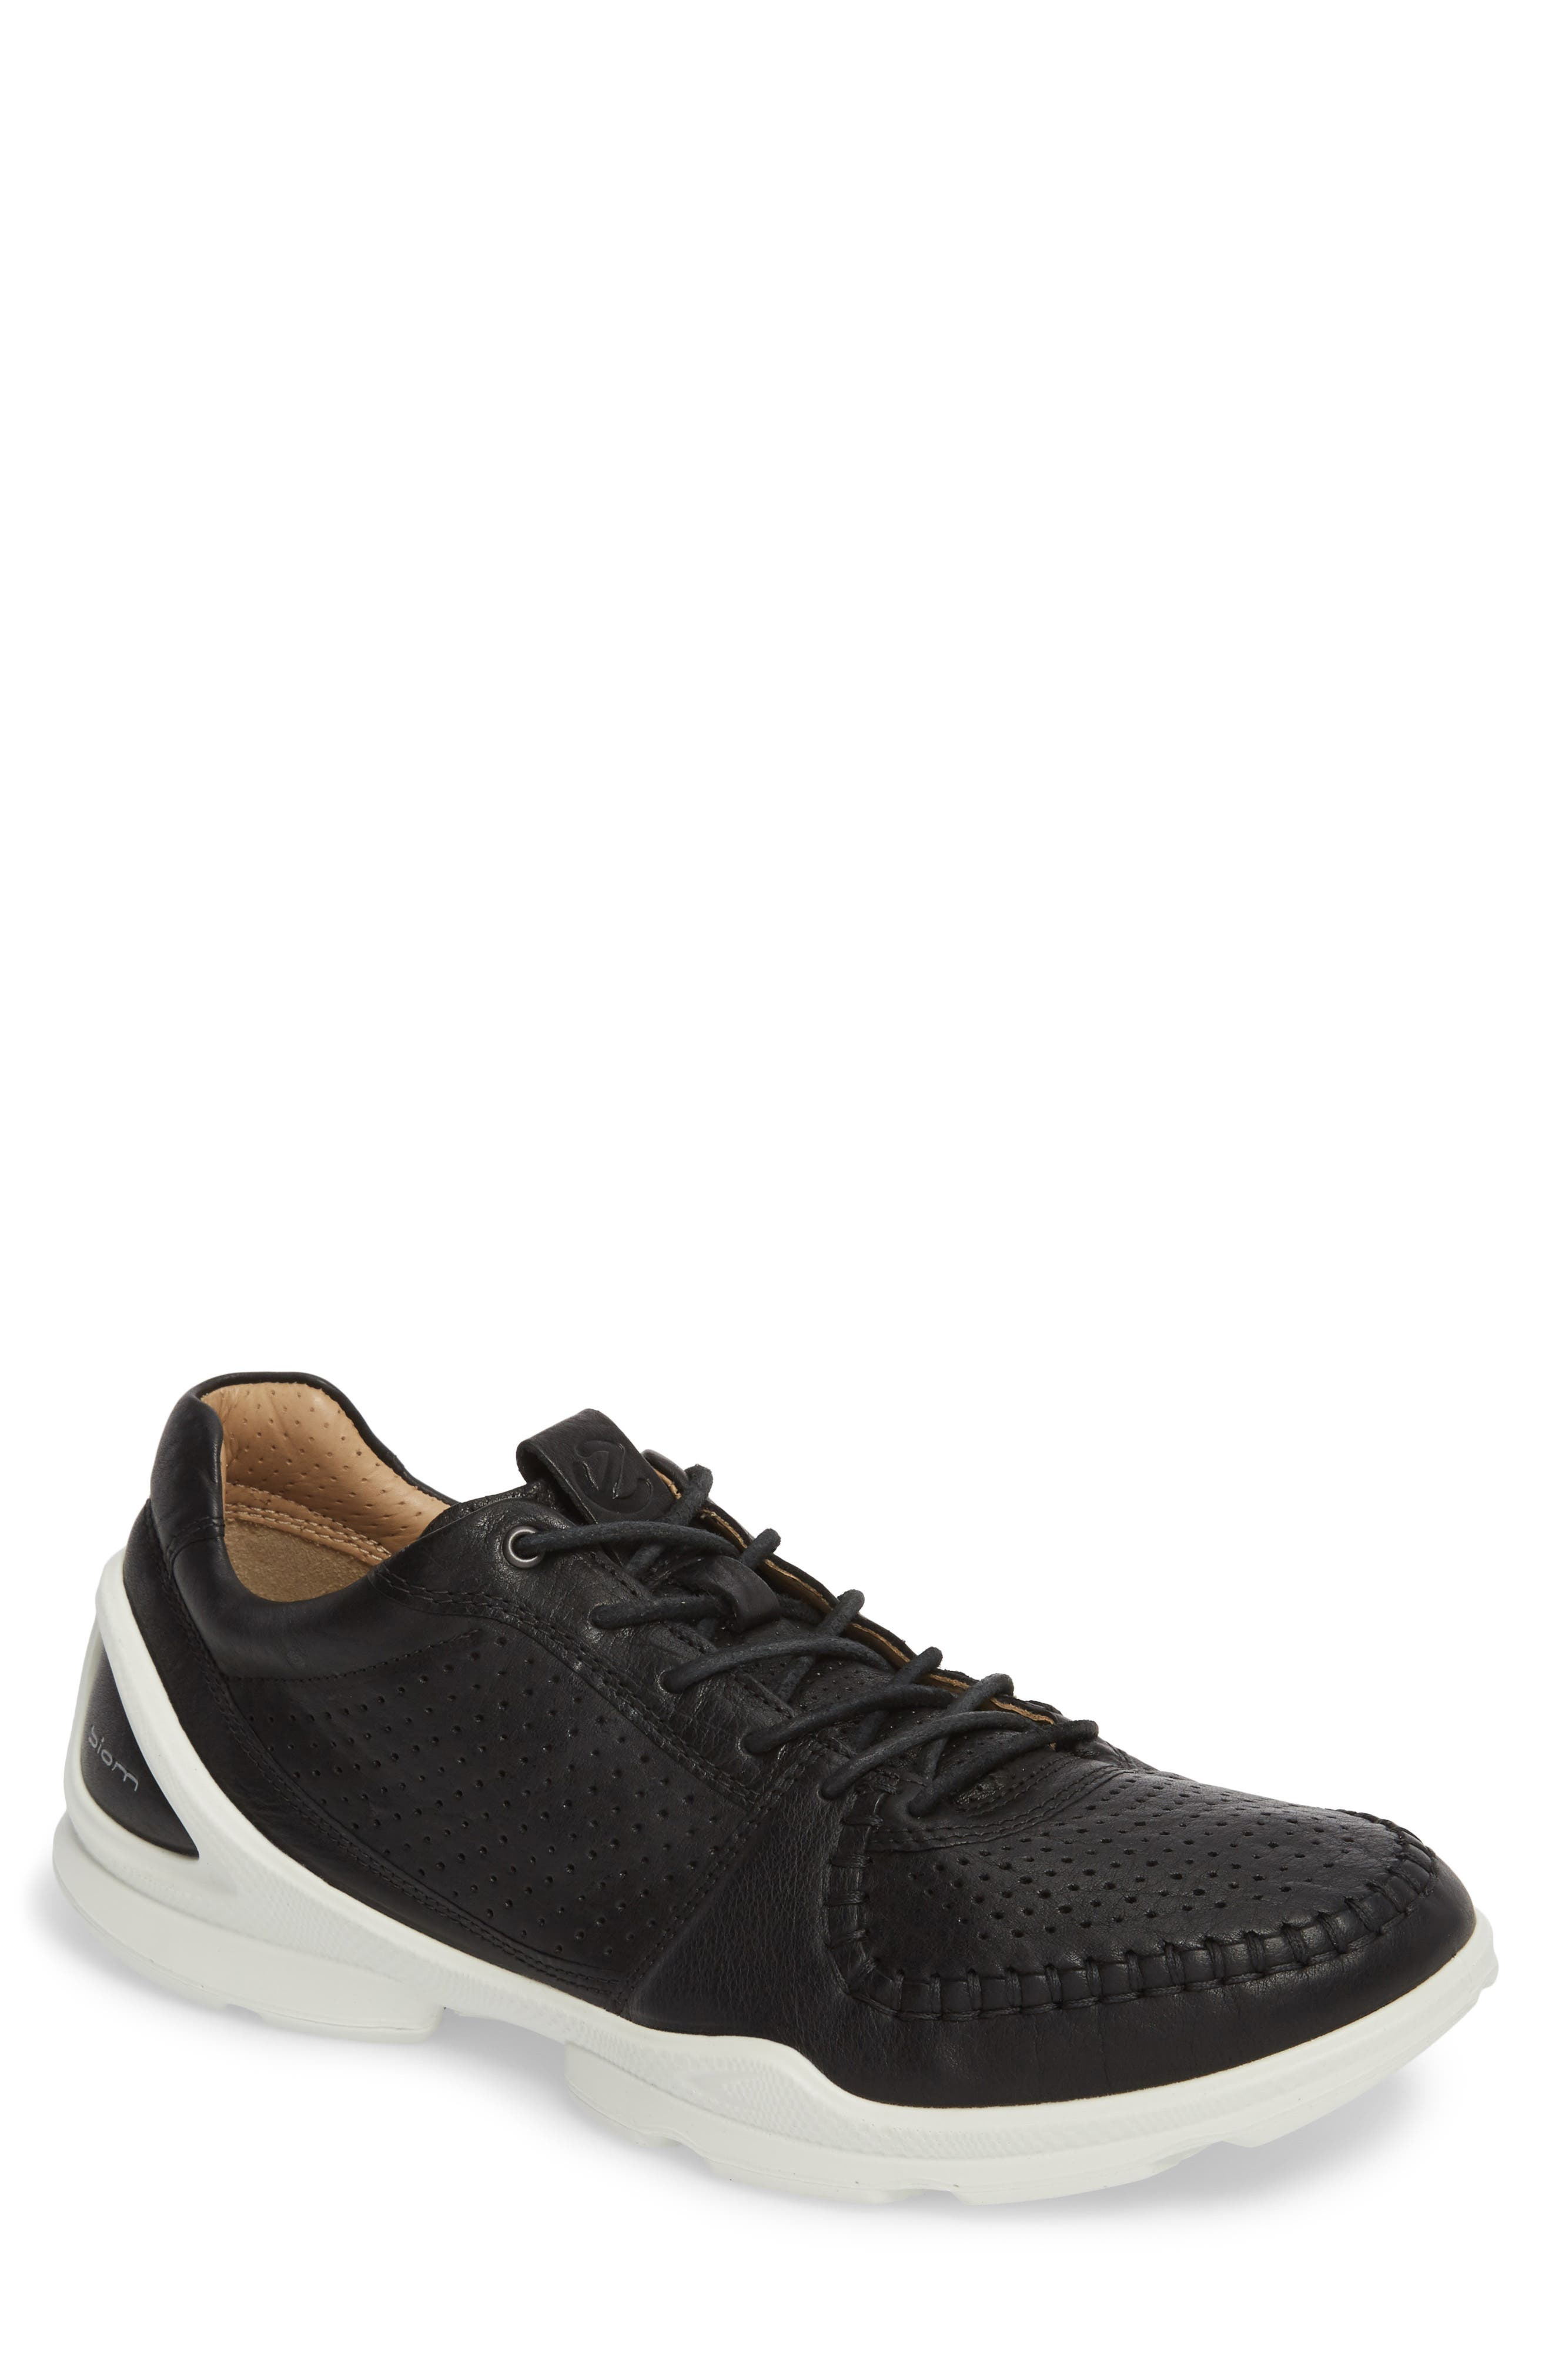 BIOM Street Moc Toe Sneaker,                         Main,                         color, BLACK LEATHER